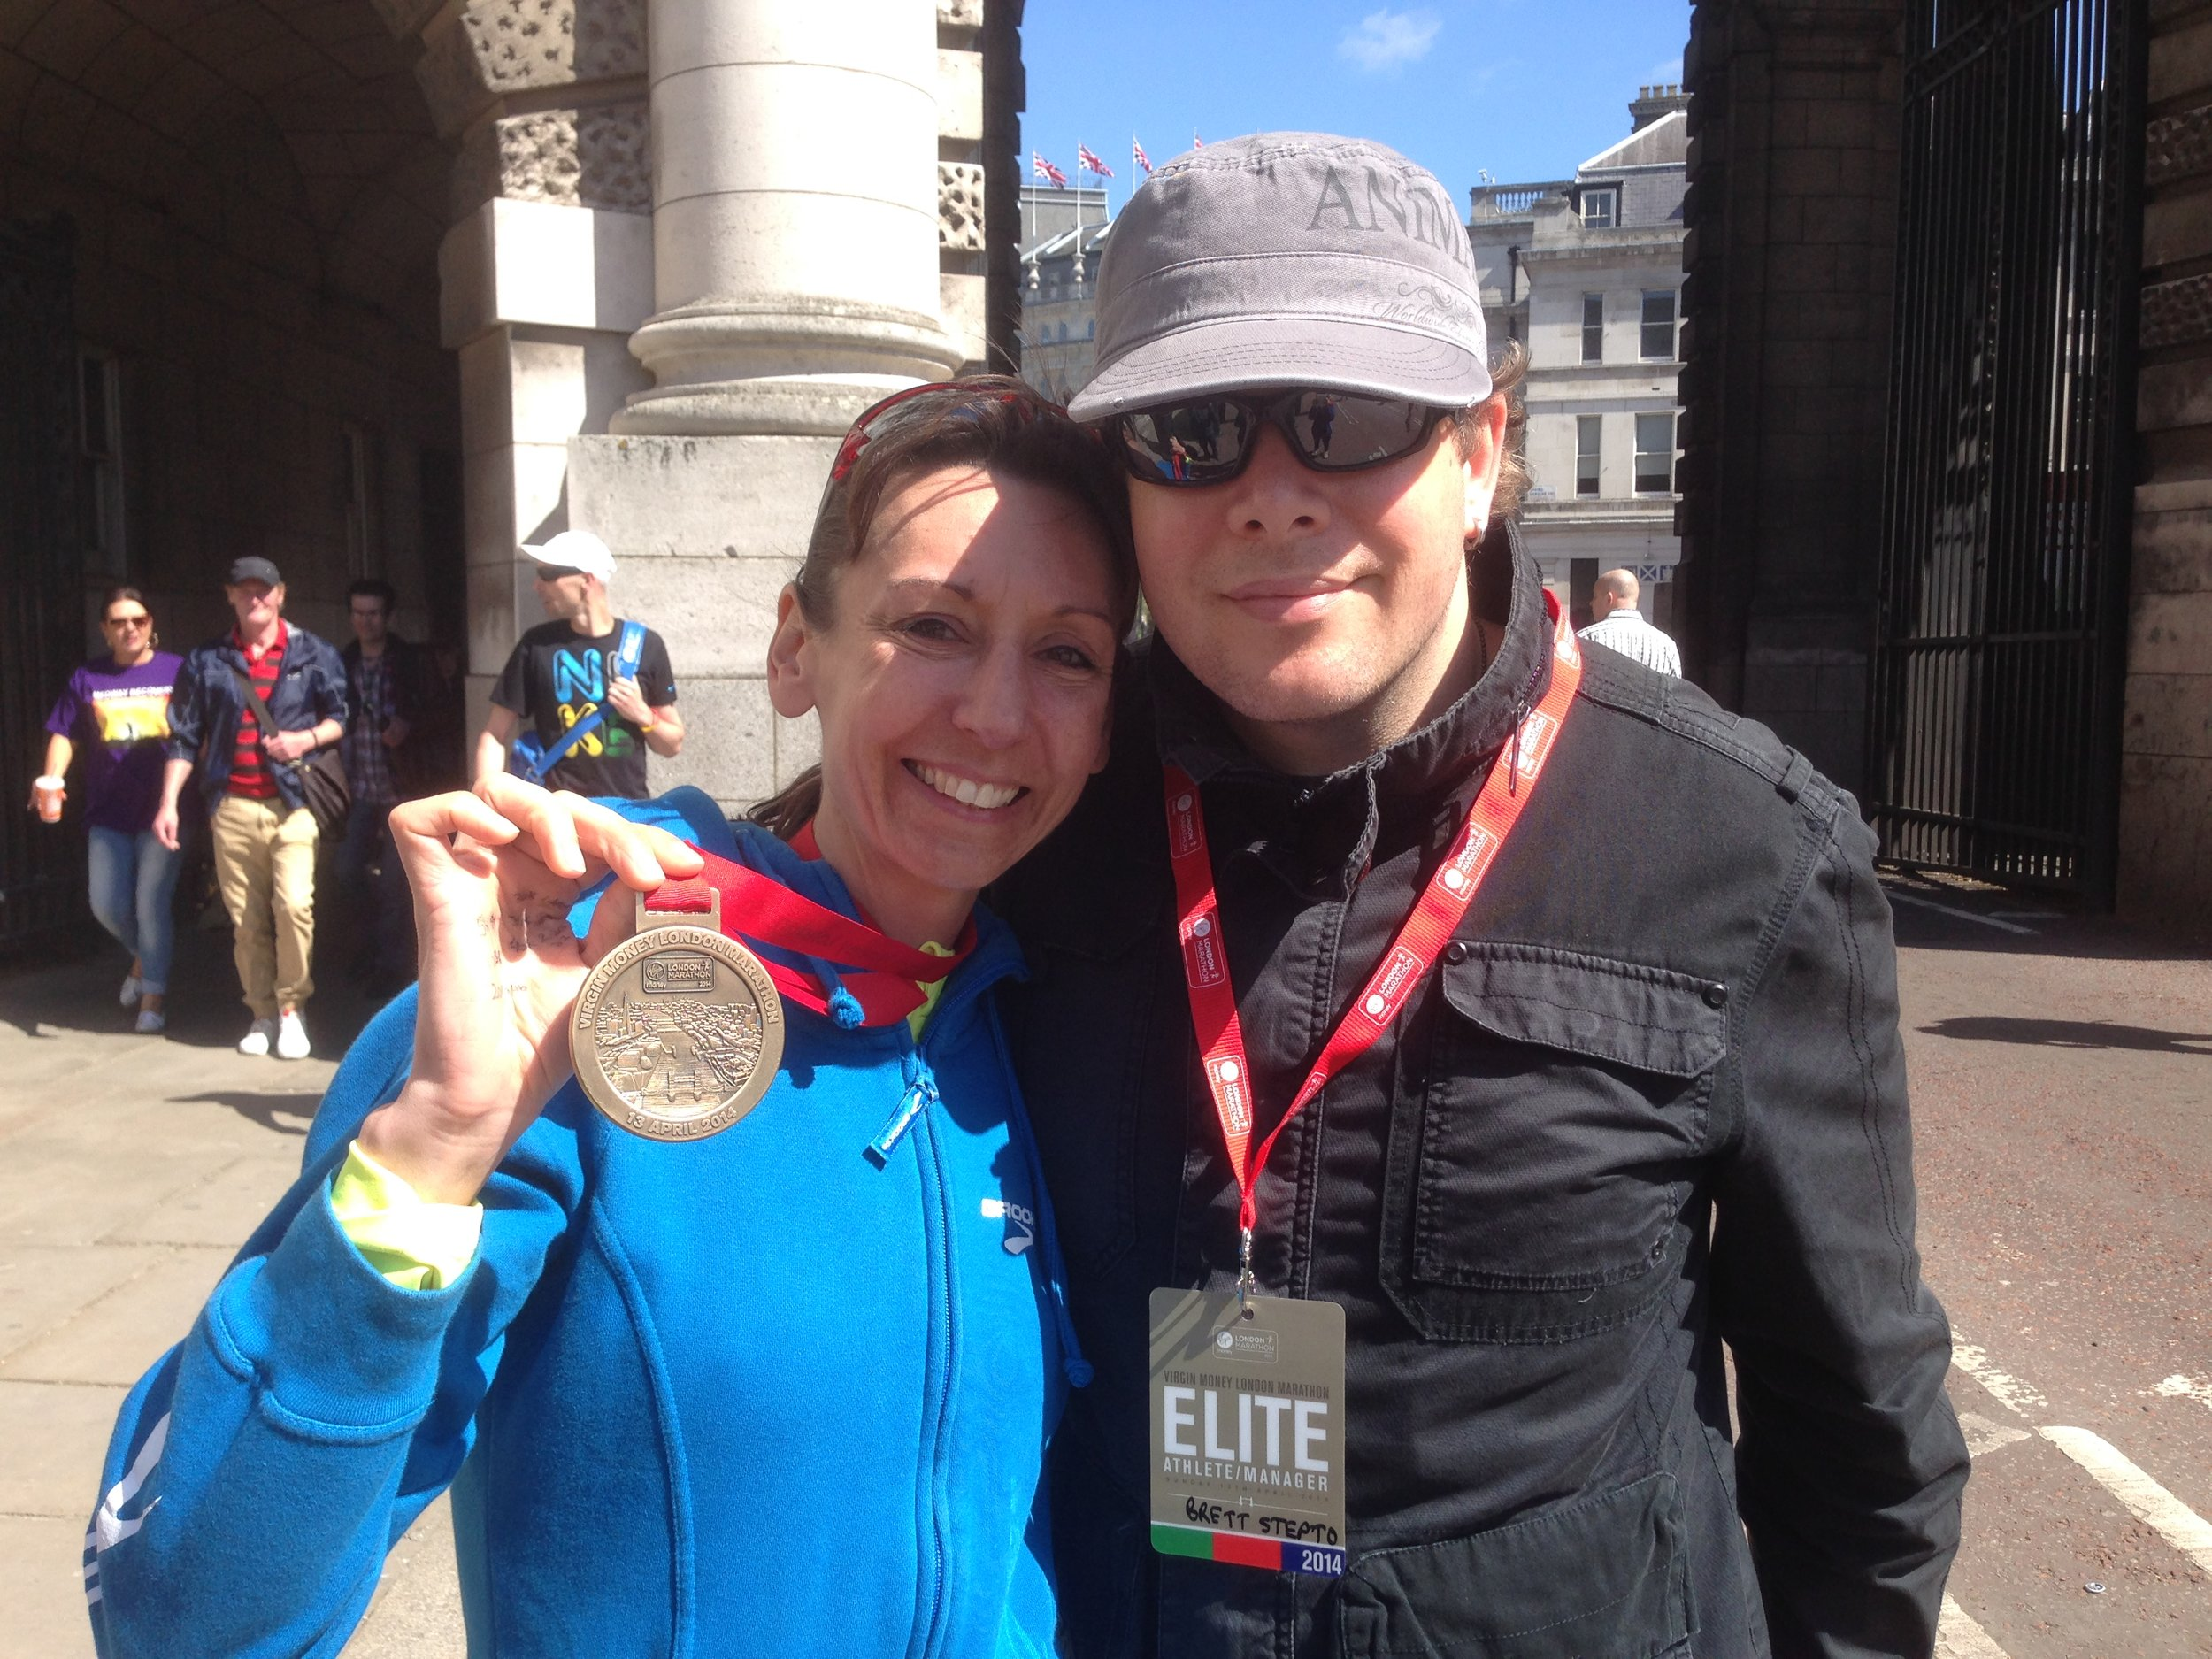 Emma and her husband Brett after the 2014 London Marathon